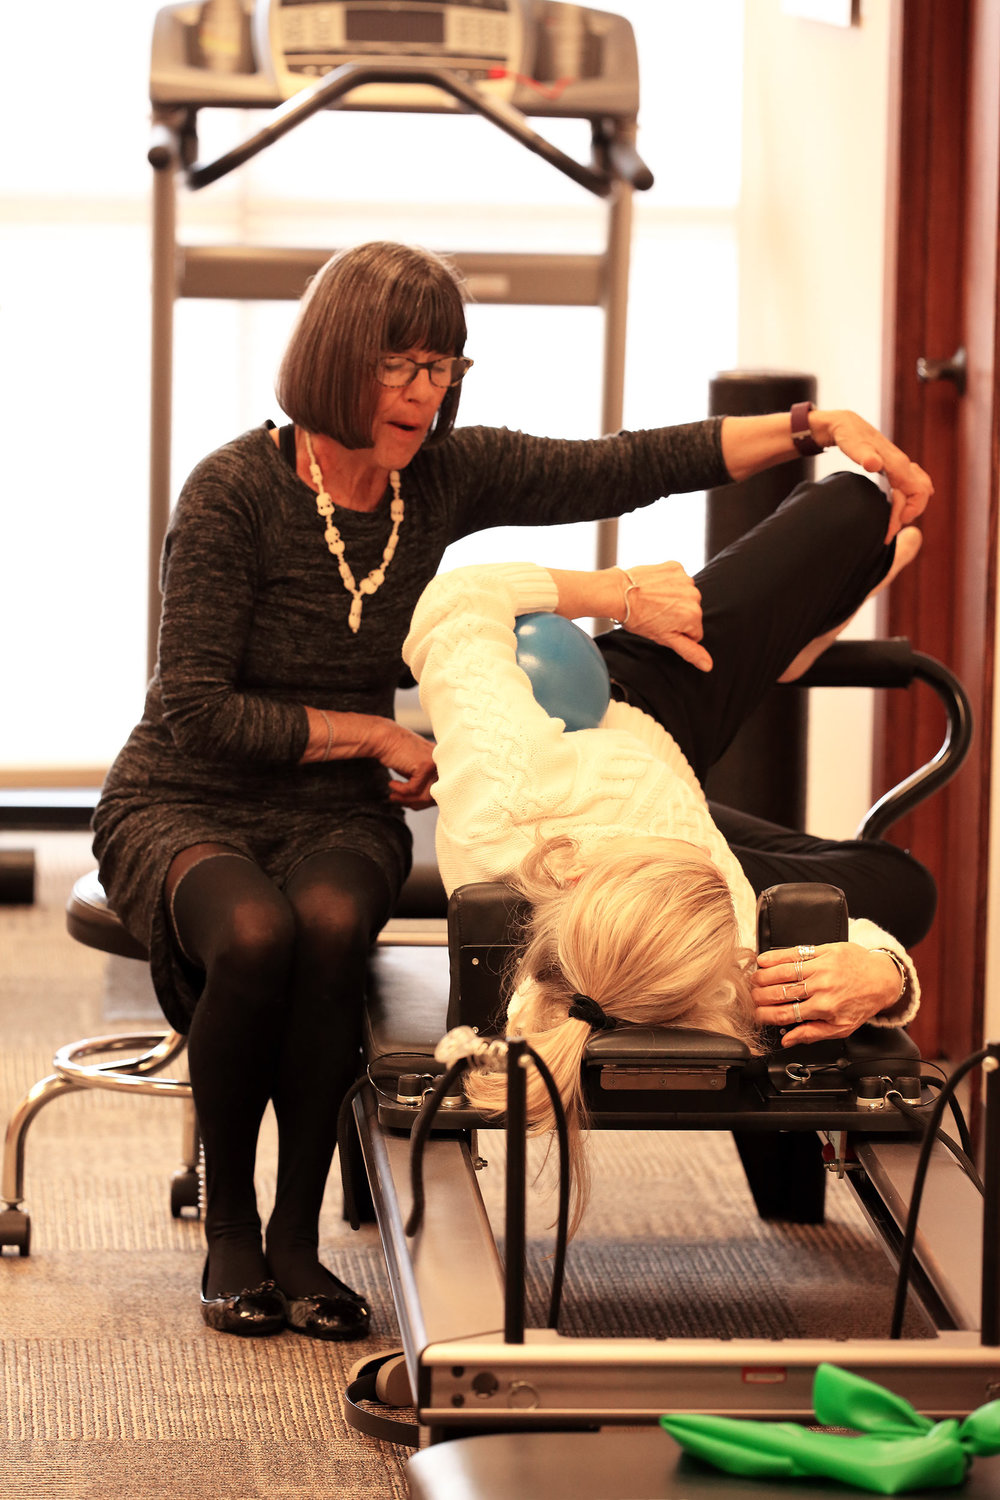 cathy-with-patient-on-reformer.jpg